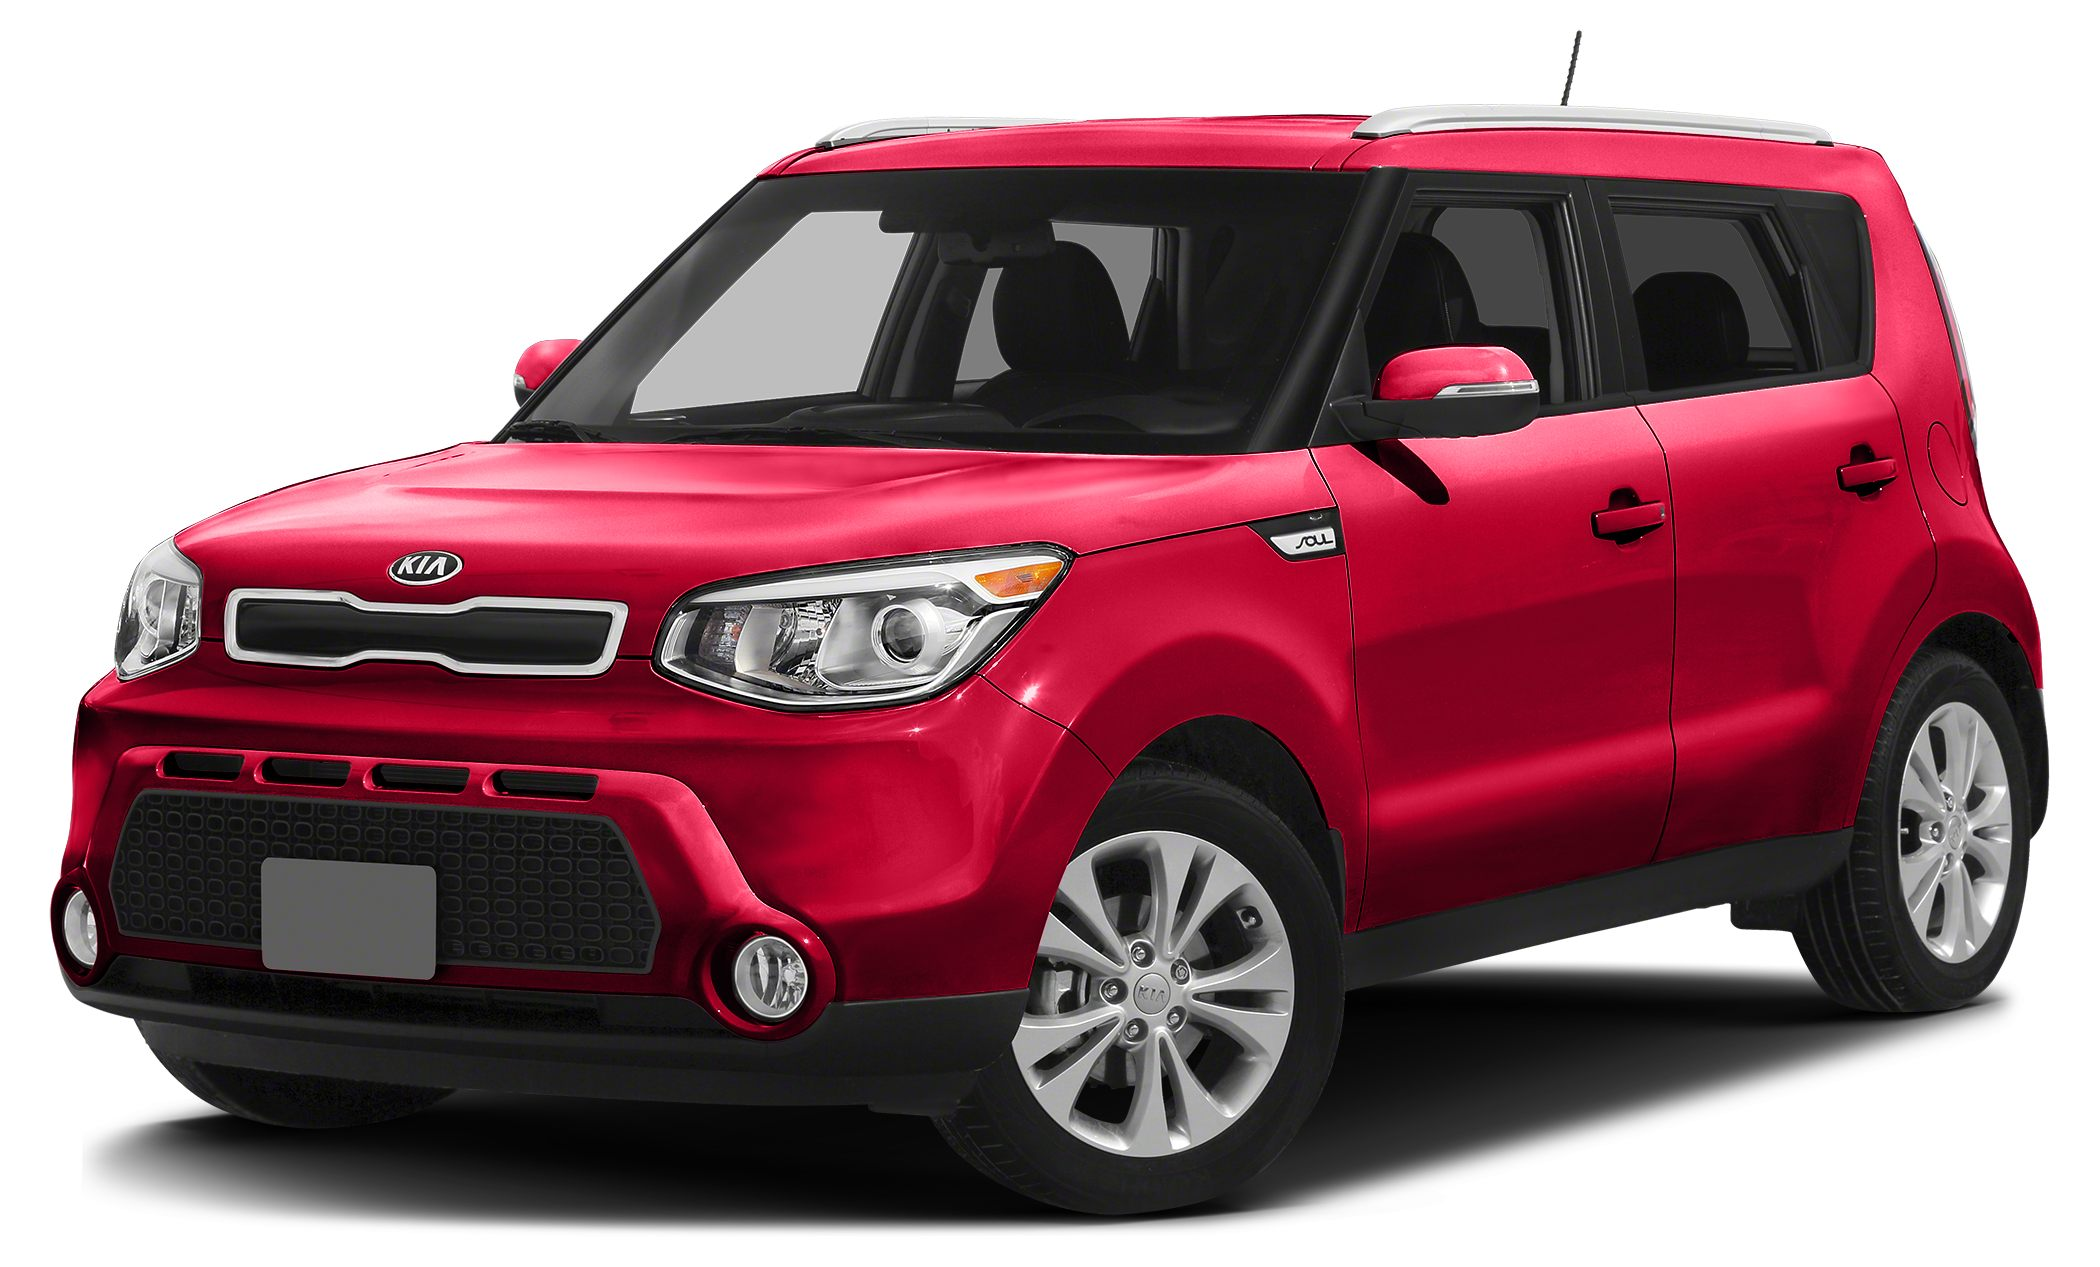 2015 Kia Soul  All the right ingredients Red and Ready NEW ARRIVAL HERE AT BOYD This is your